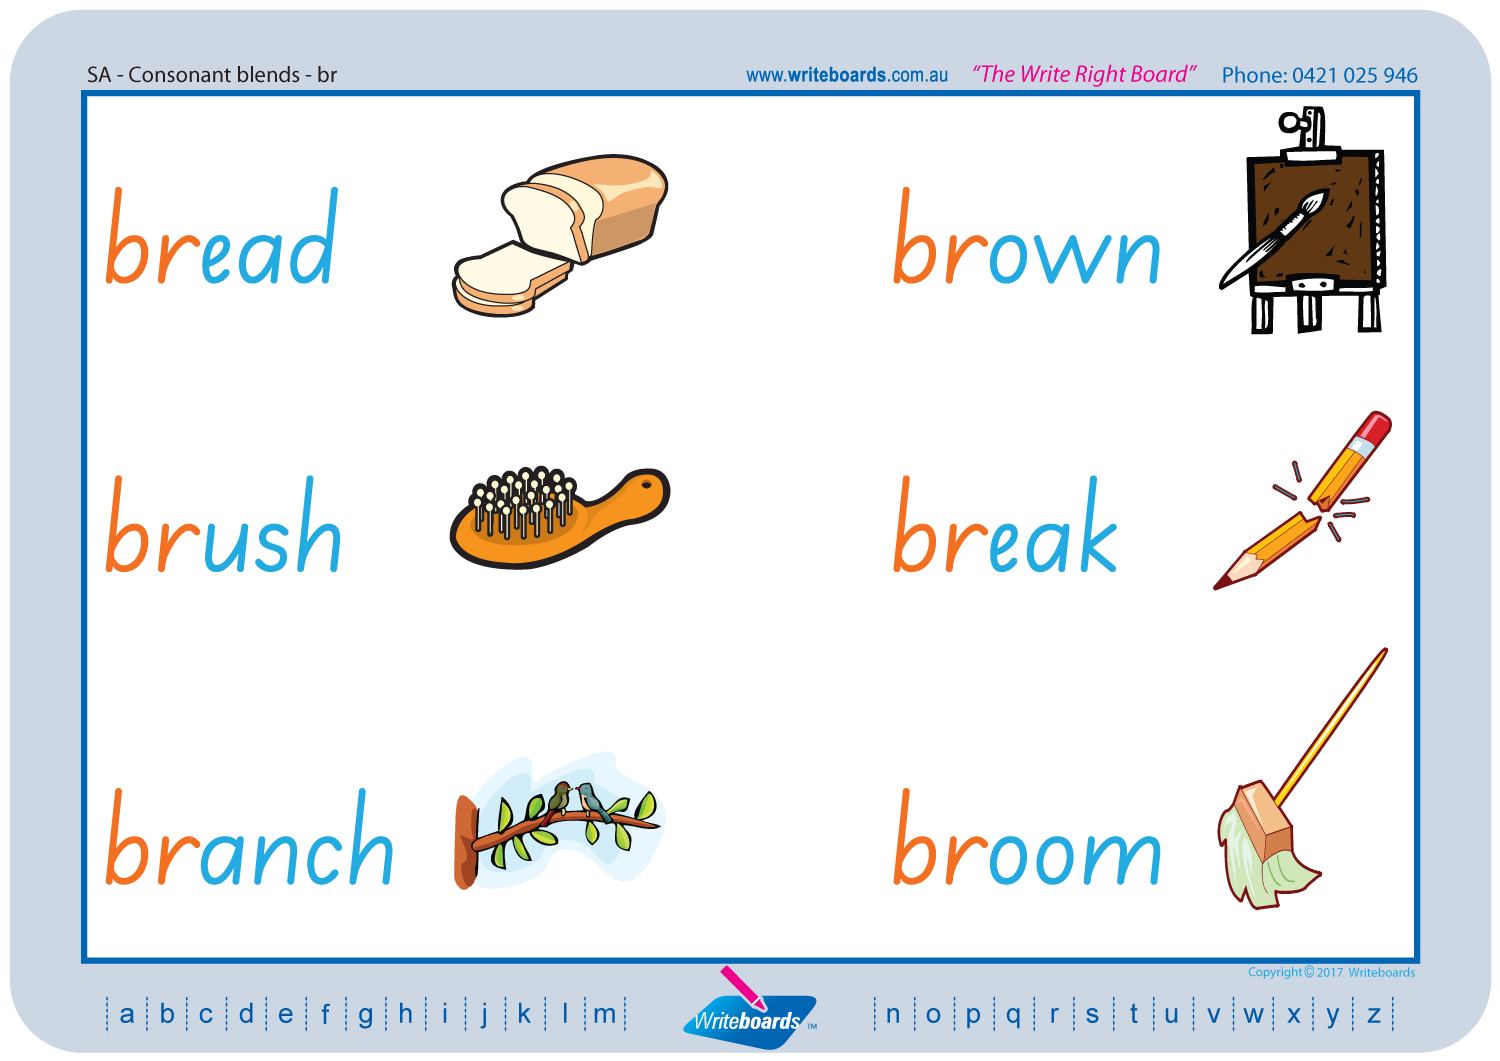 Phonic Consonant Blends - SA Modern Cursive Font | Writeboards